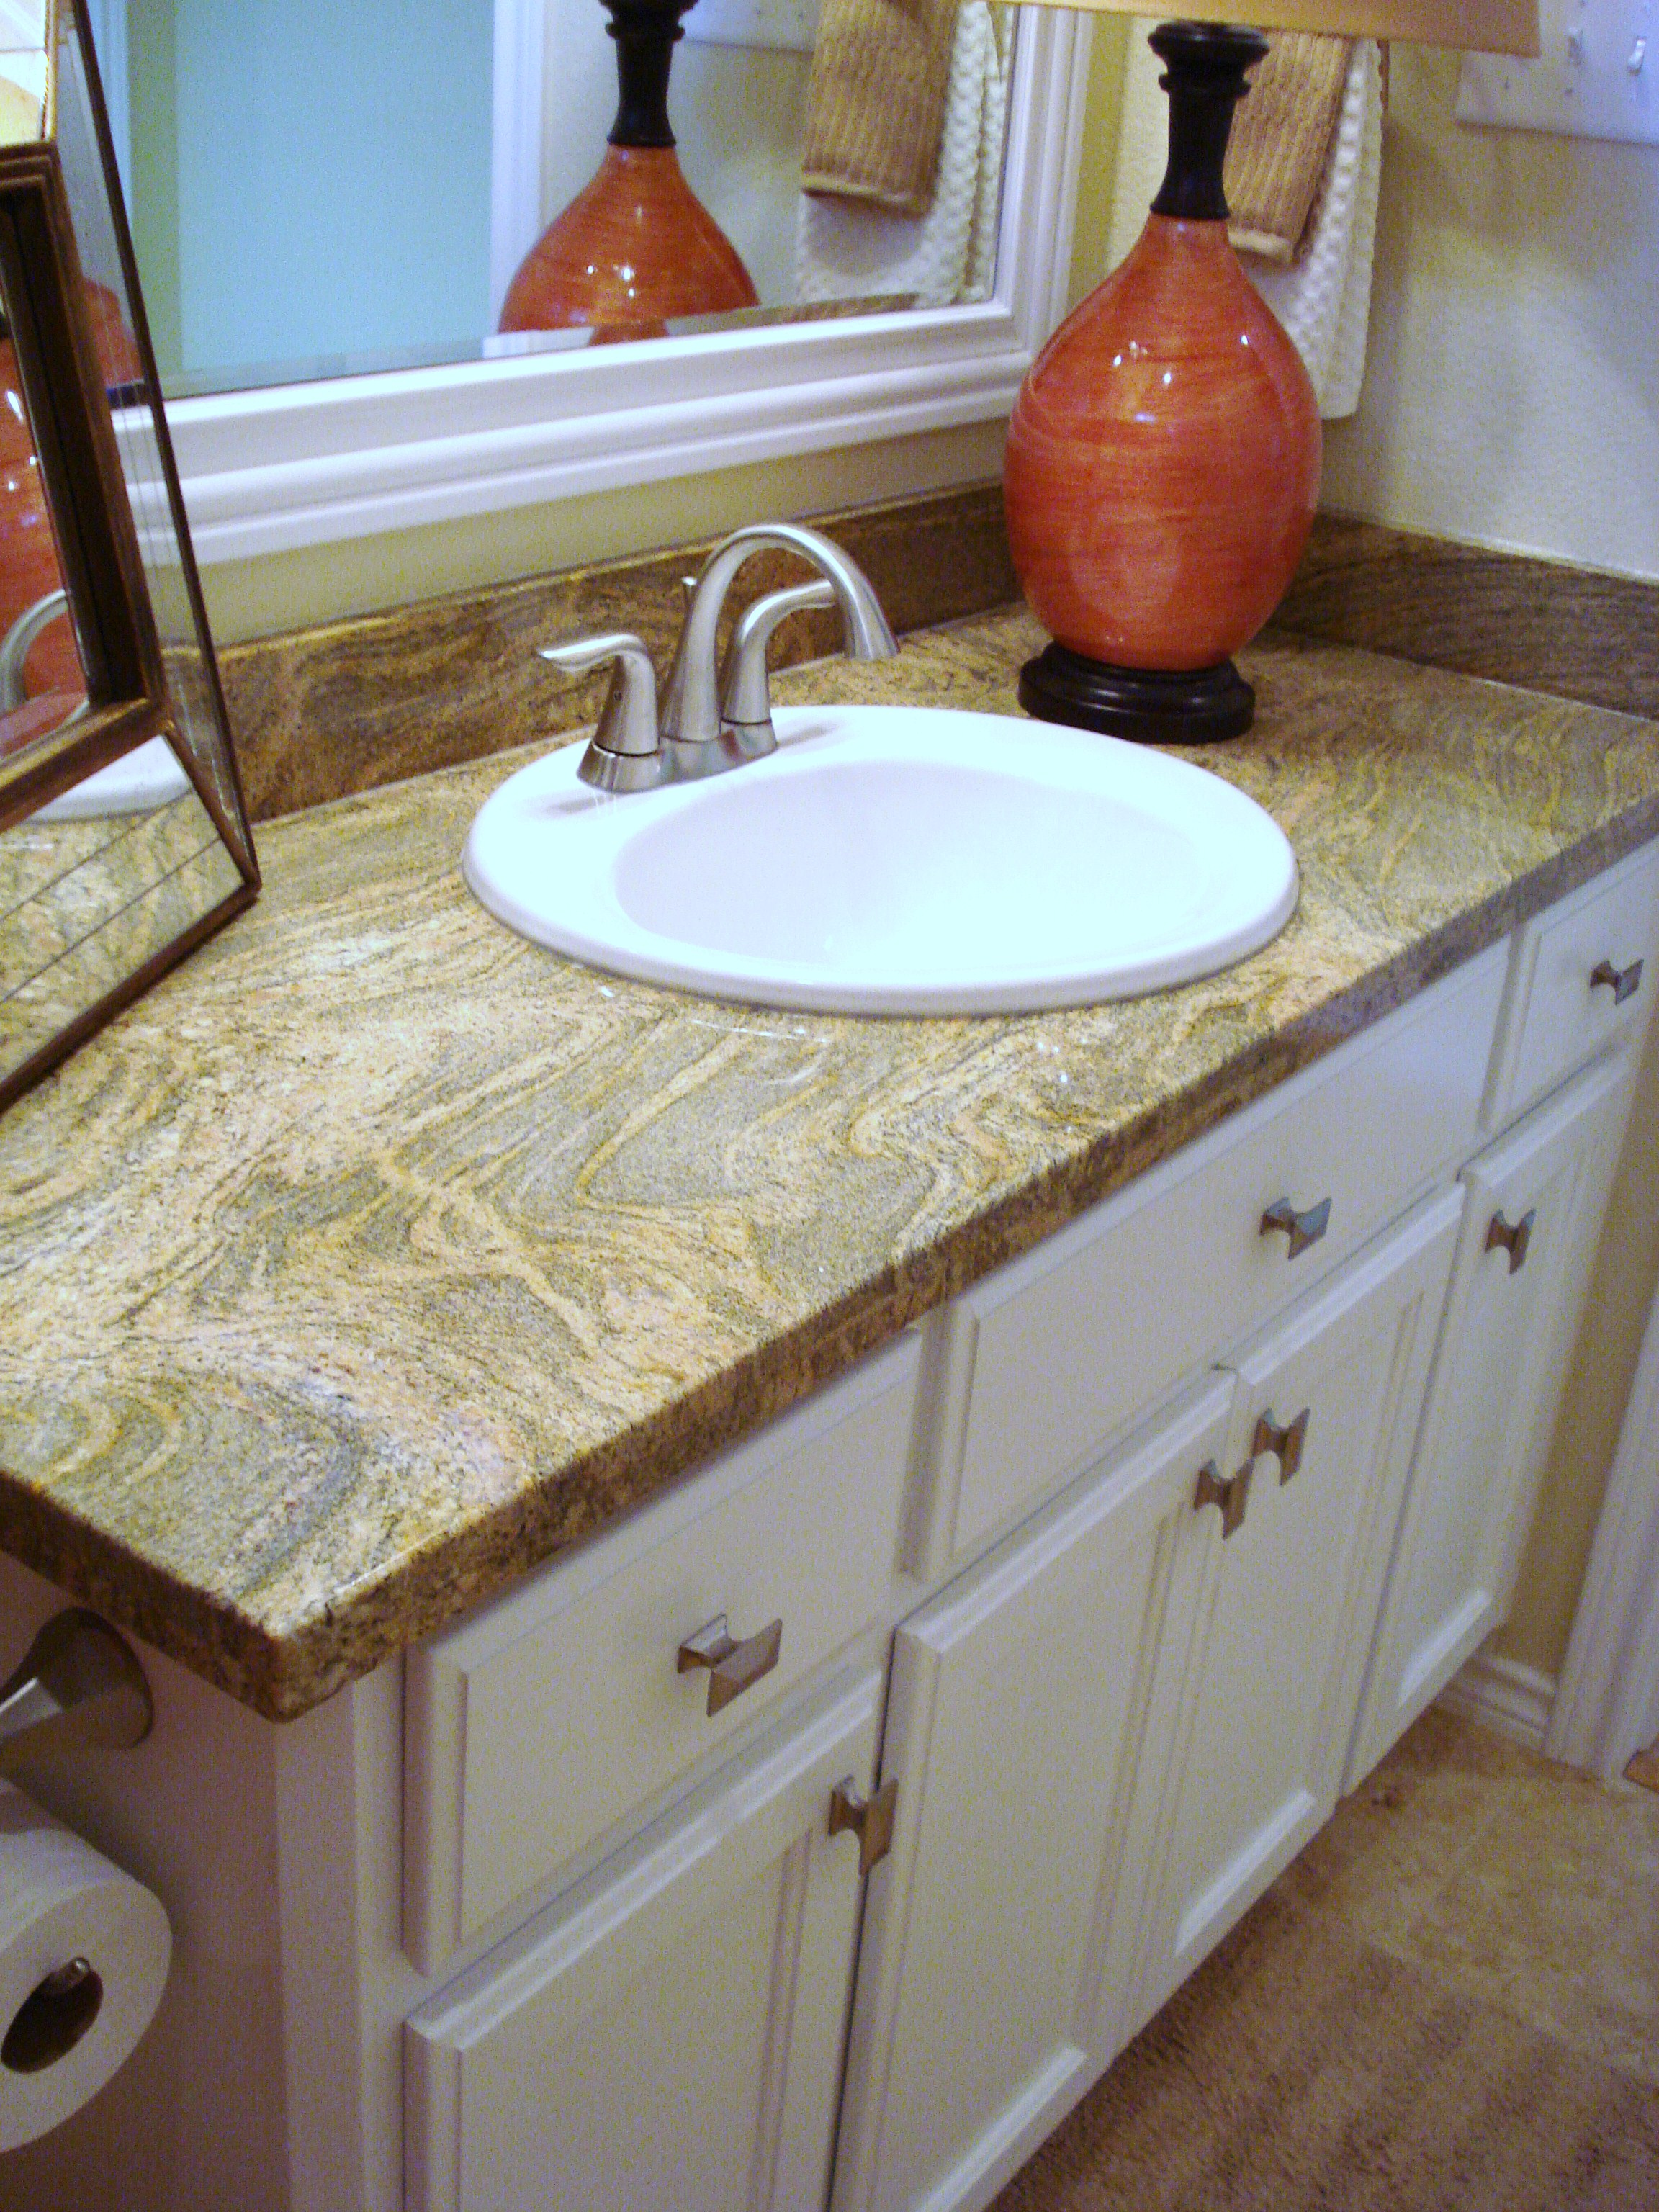 buy epic of vanities double narrow santa size popularn to is design sinks with includes cecilia backsplash granite durable cultured perfect bathroom sink remodel this cabinets your sensational tops matching and about clean marble cute valuable vessel inch best full depth countertop easy home for image inspiration x vanity most top